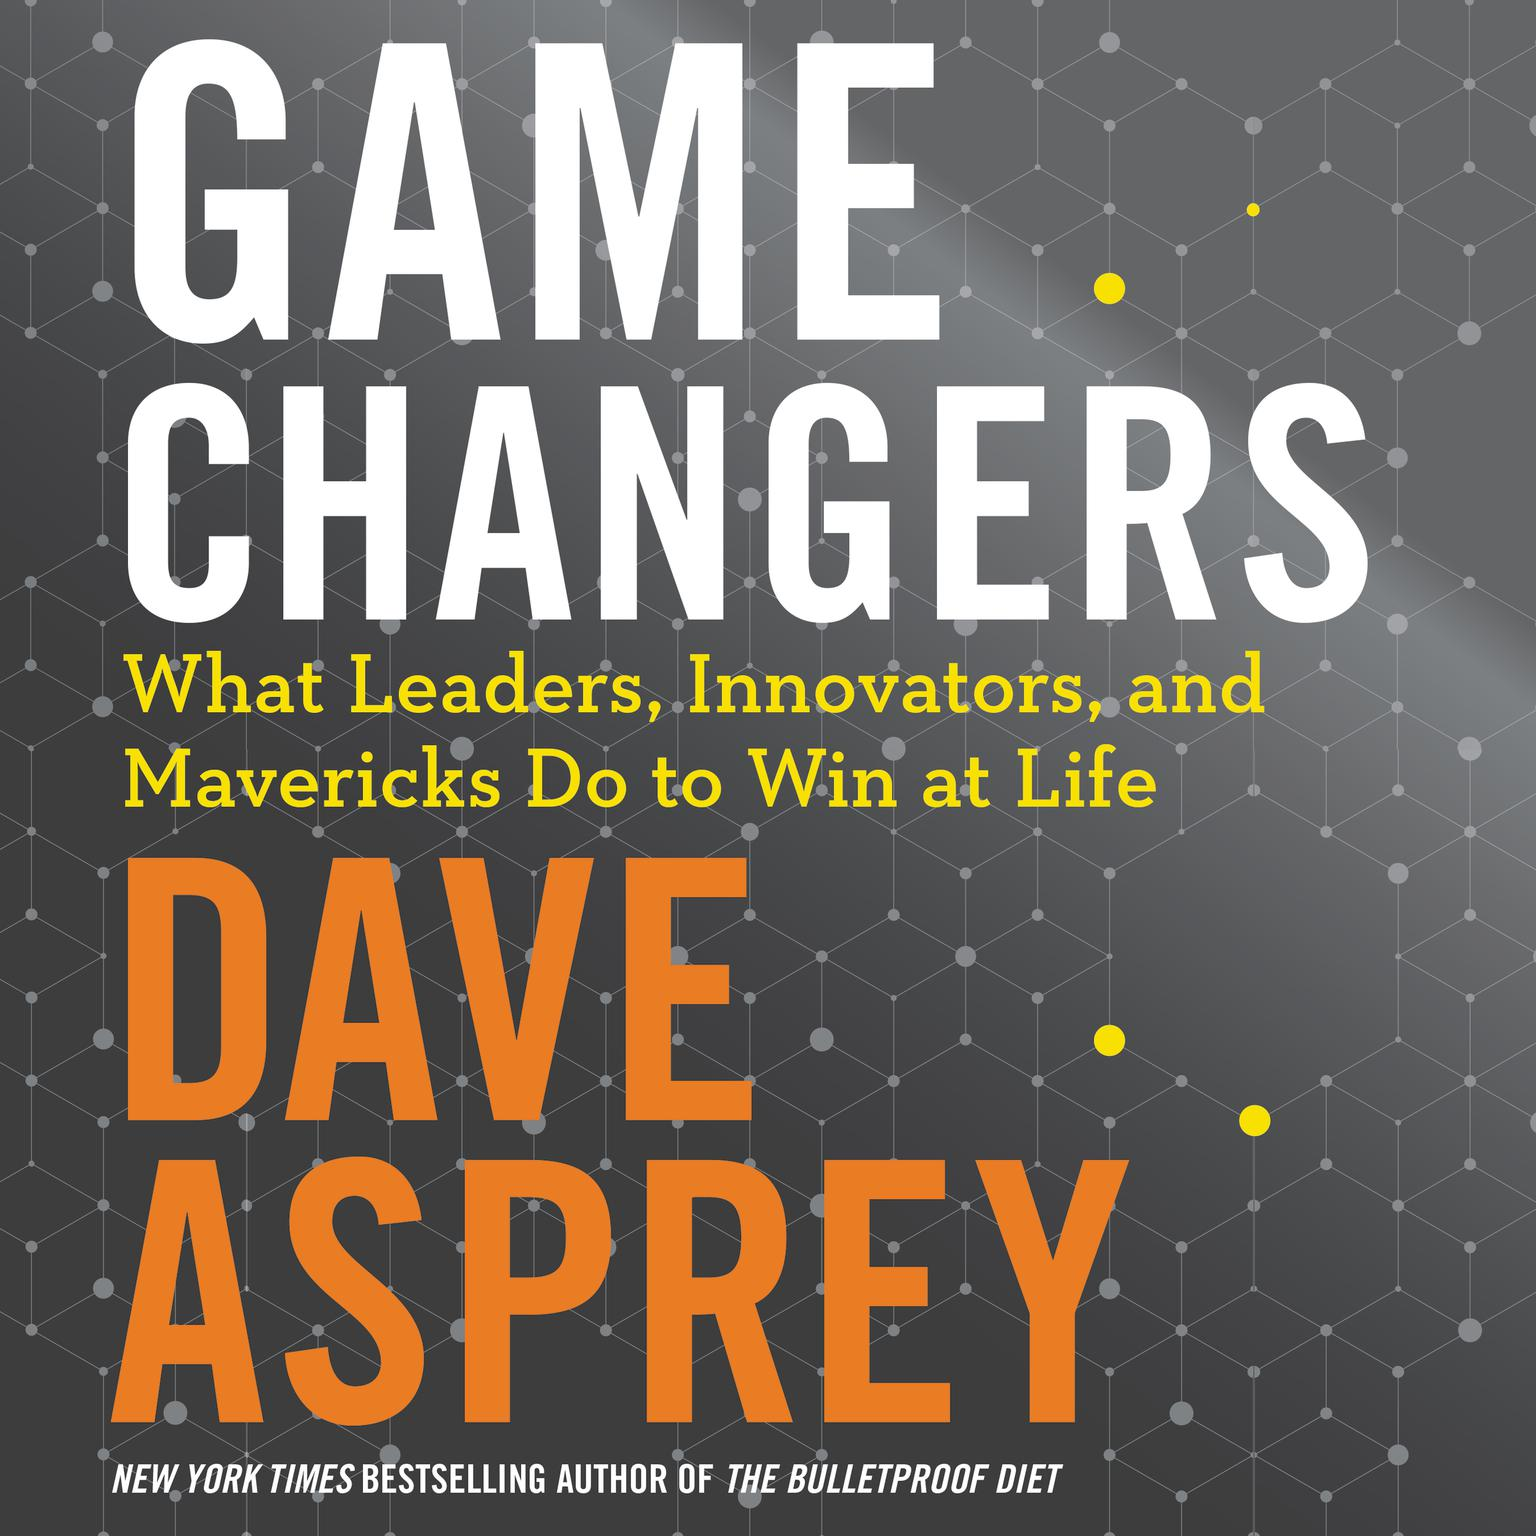 Printable Game Changers: What Leaders, Innovators, and Mavericks Do To Win At Life Audiobook Cover Art